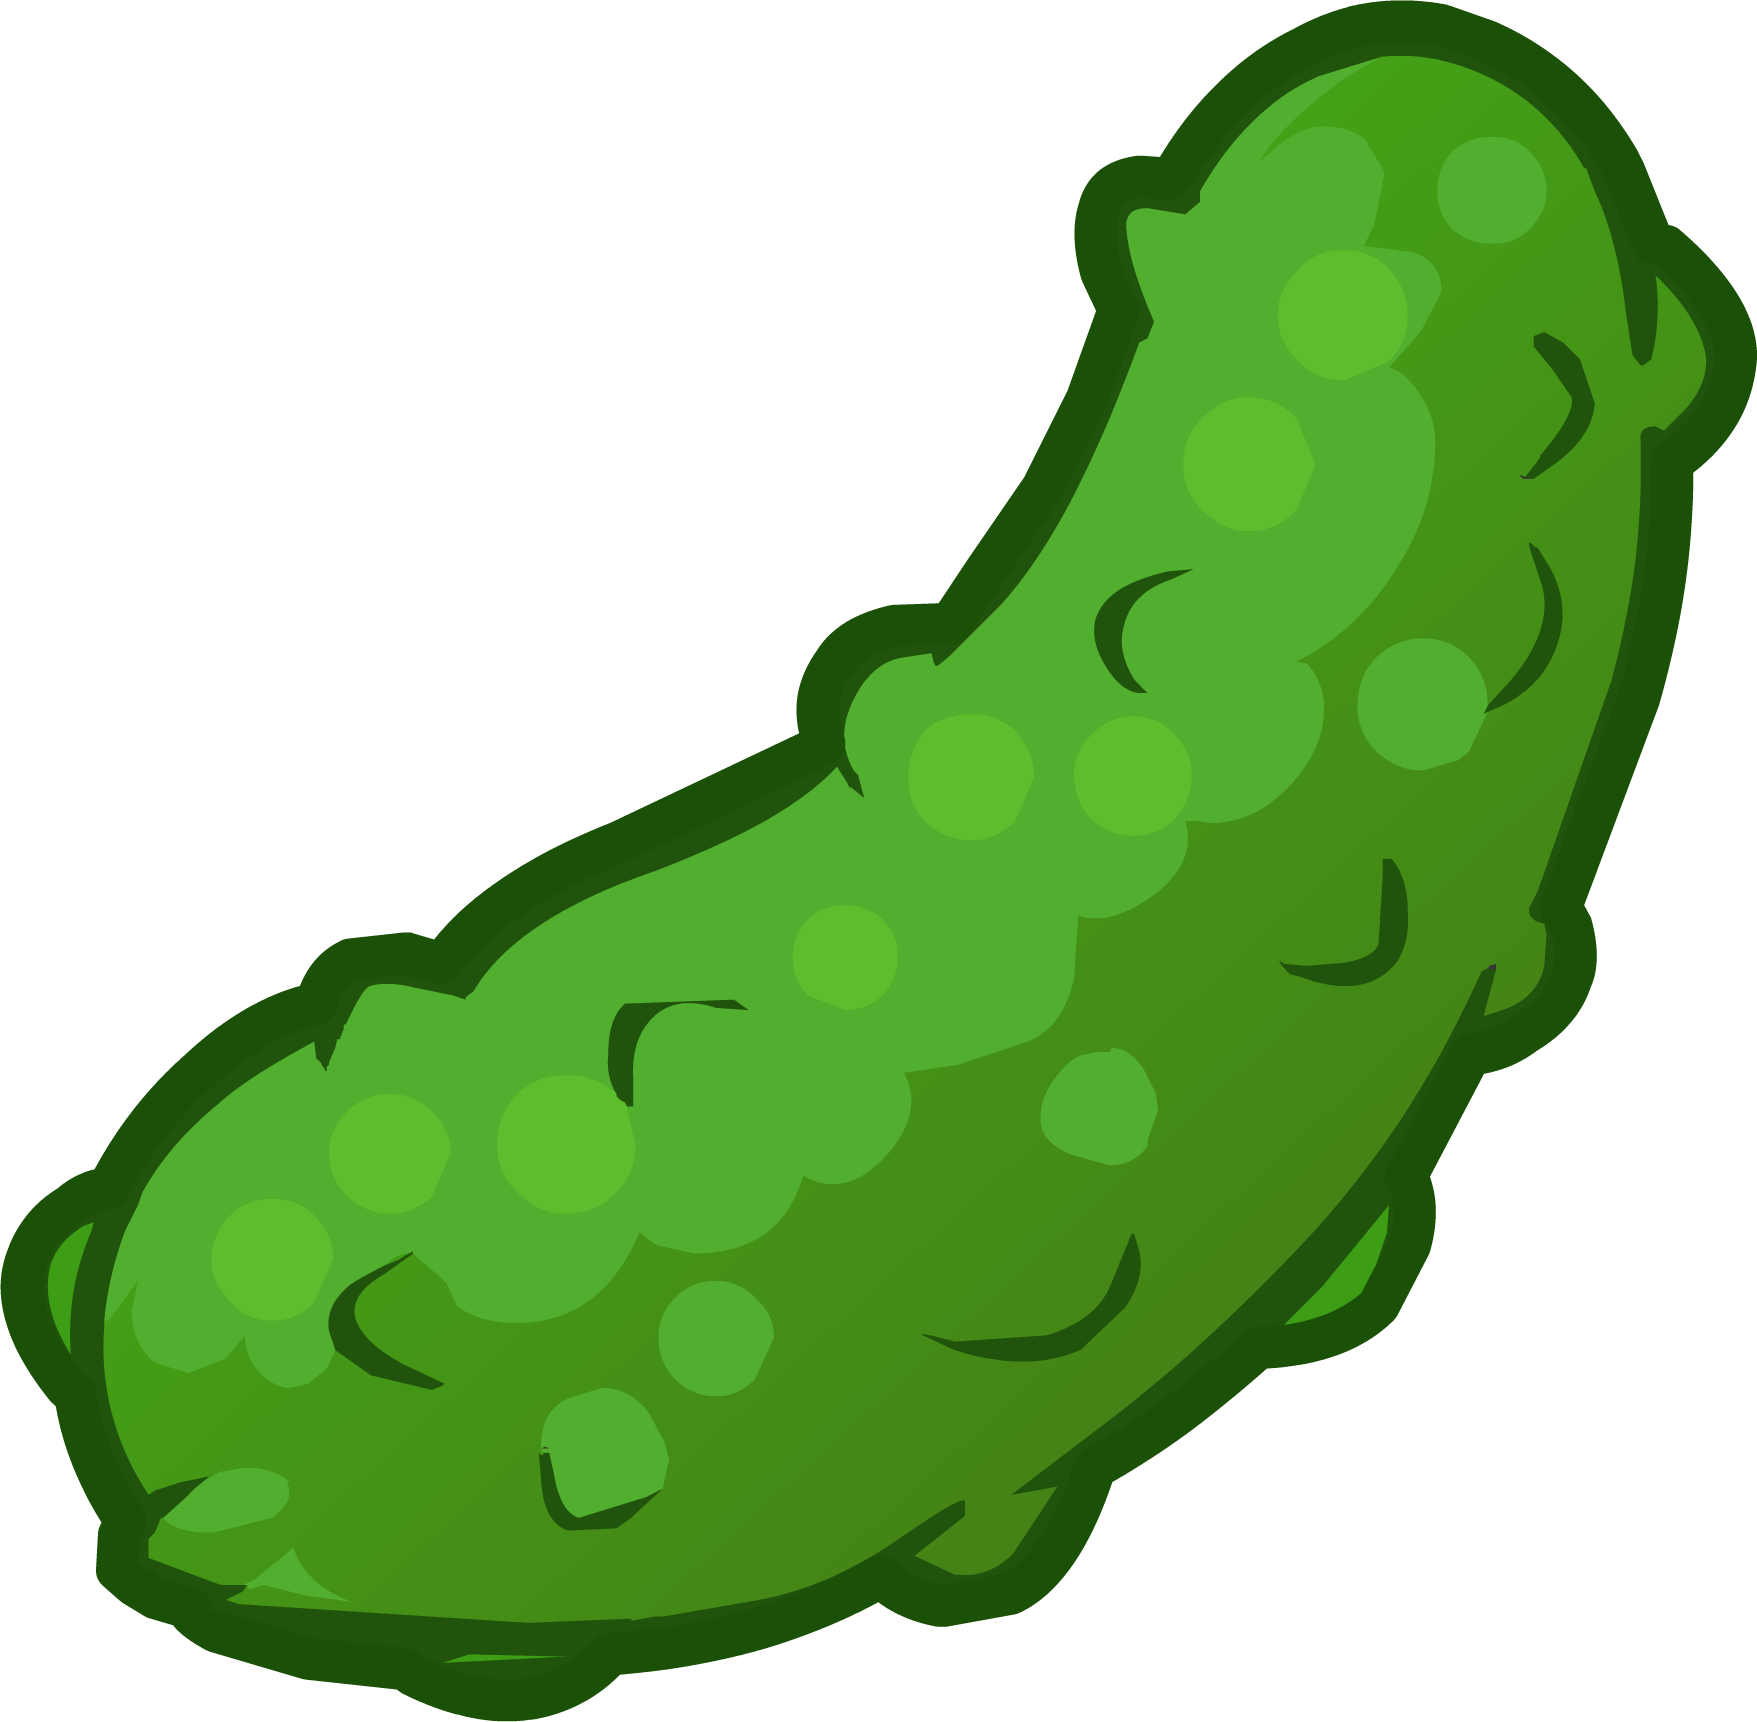 clipart royalty free Free pickles cliparts download. Pickle vector